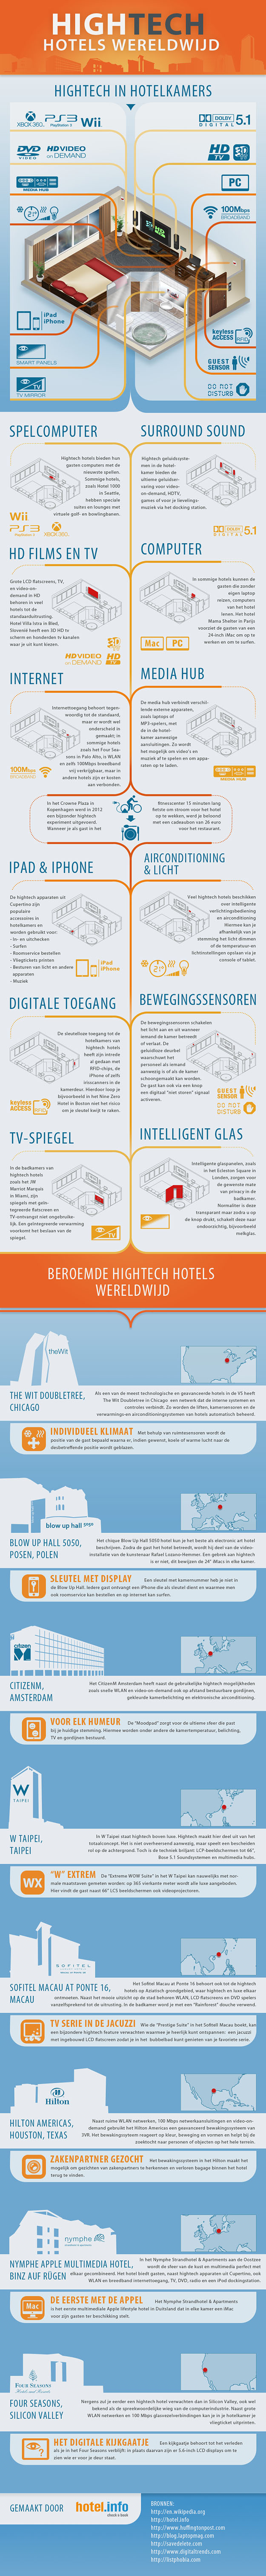 hotel-info-hightech-hotels-infographic